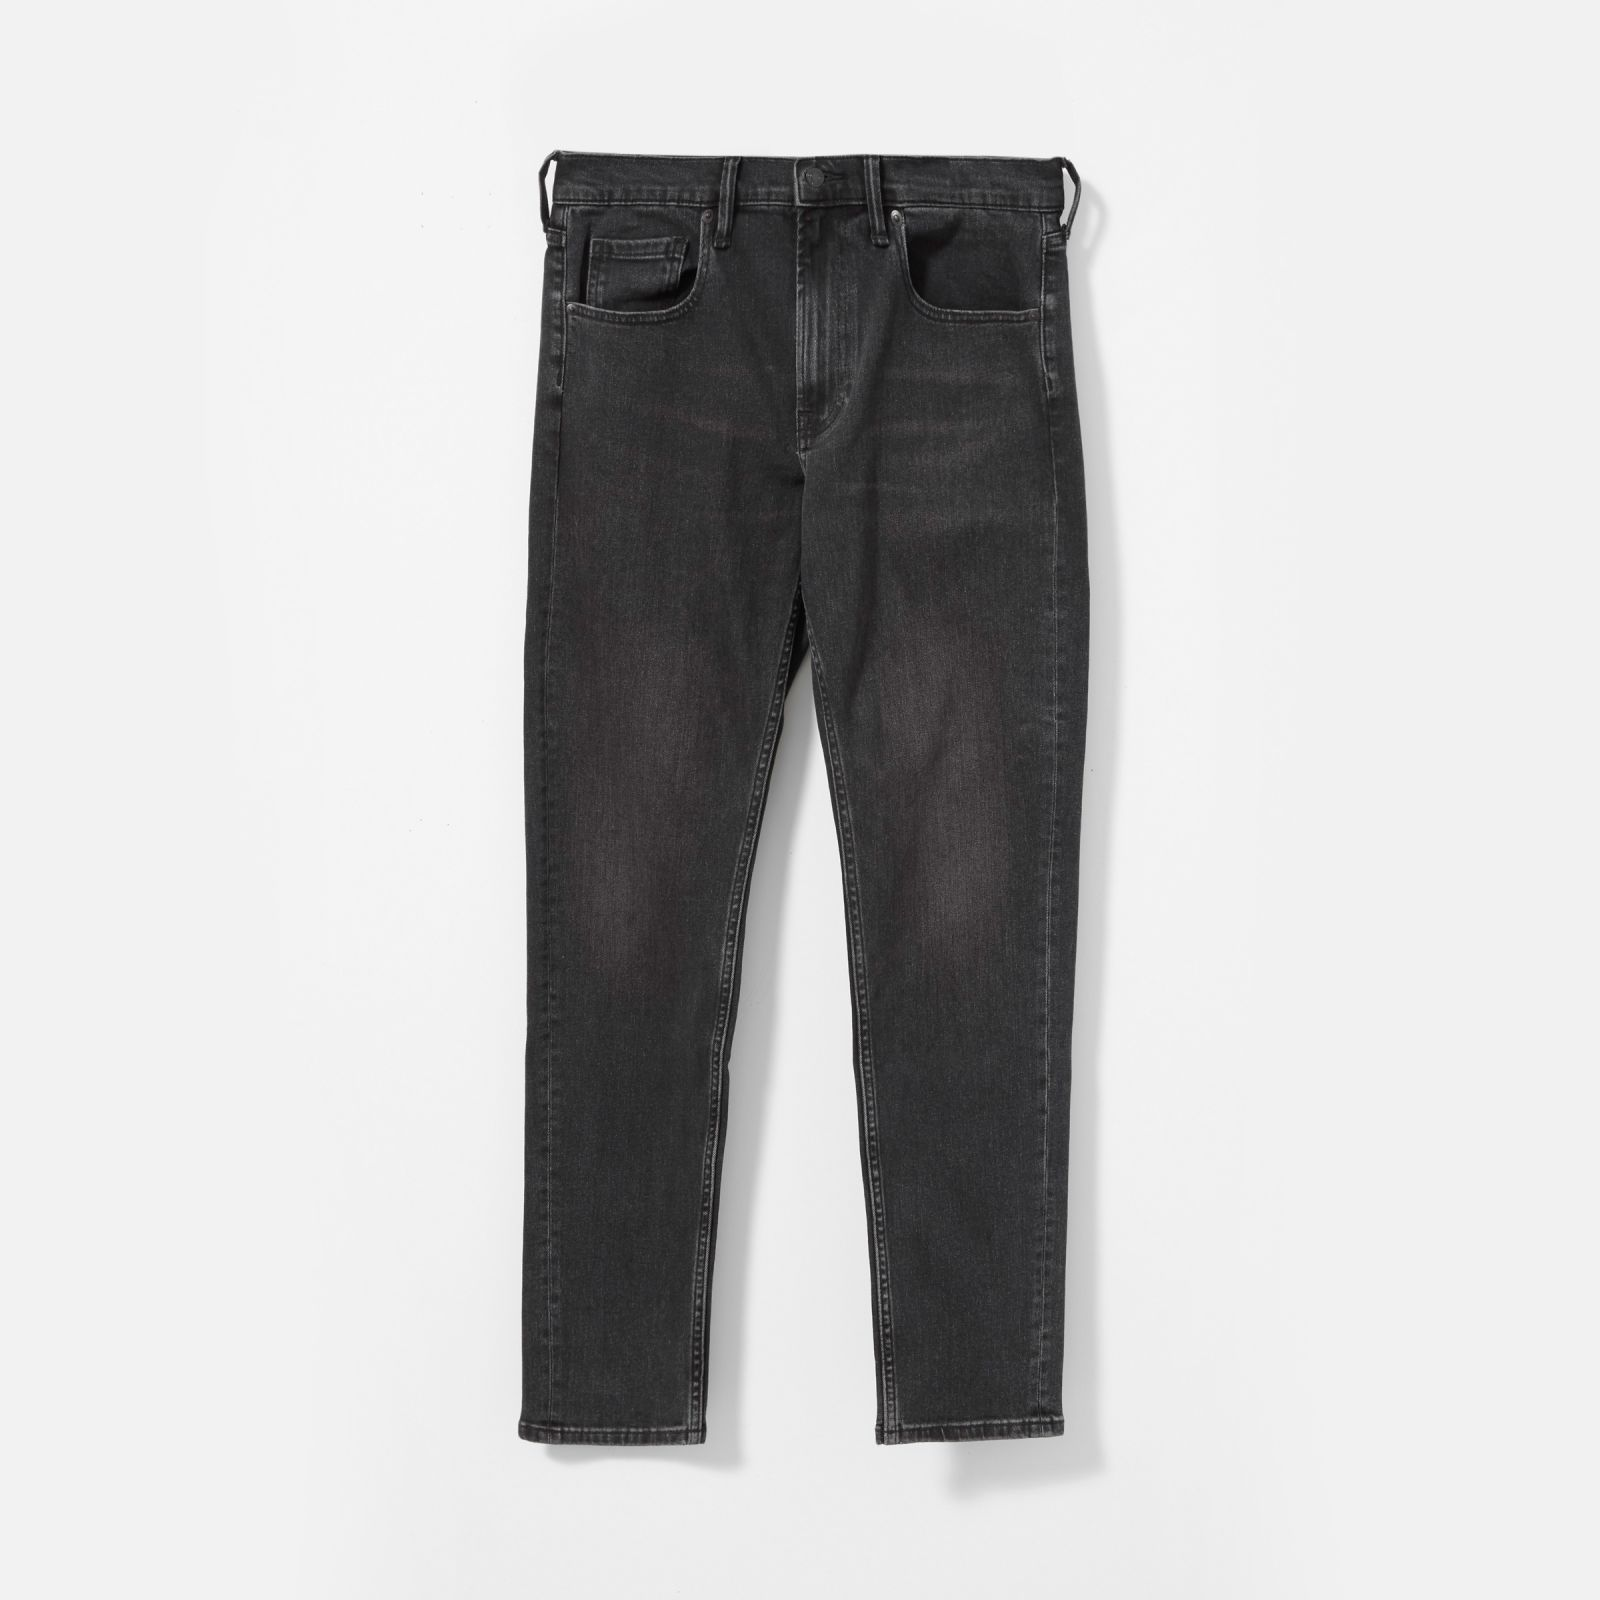 men's athletic fit jean by everlane in washed black, size 38x34